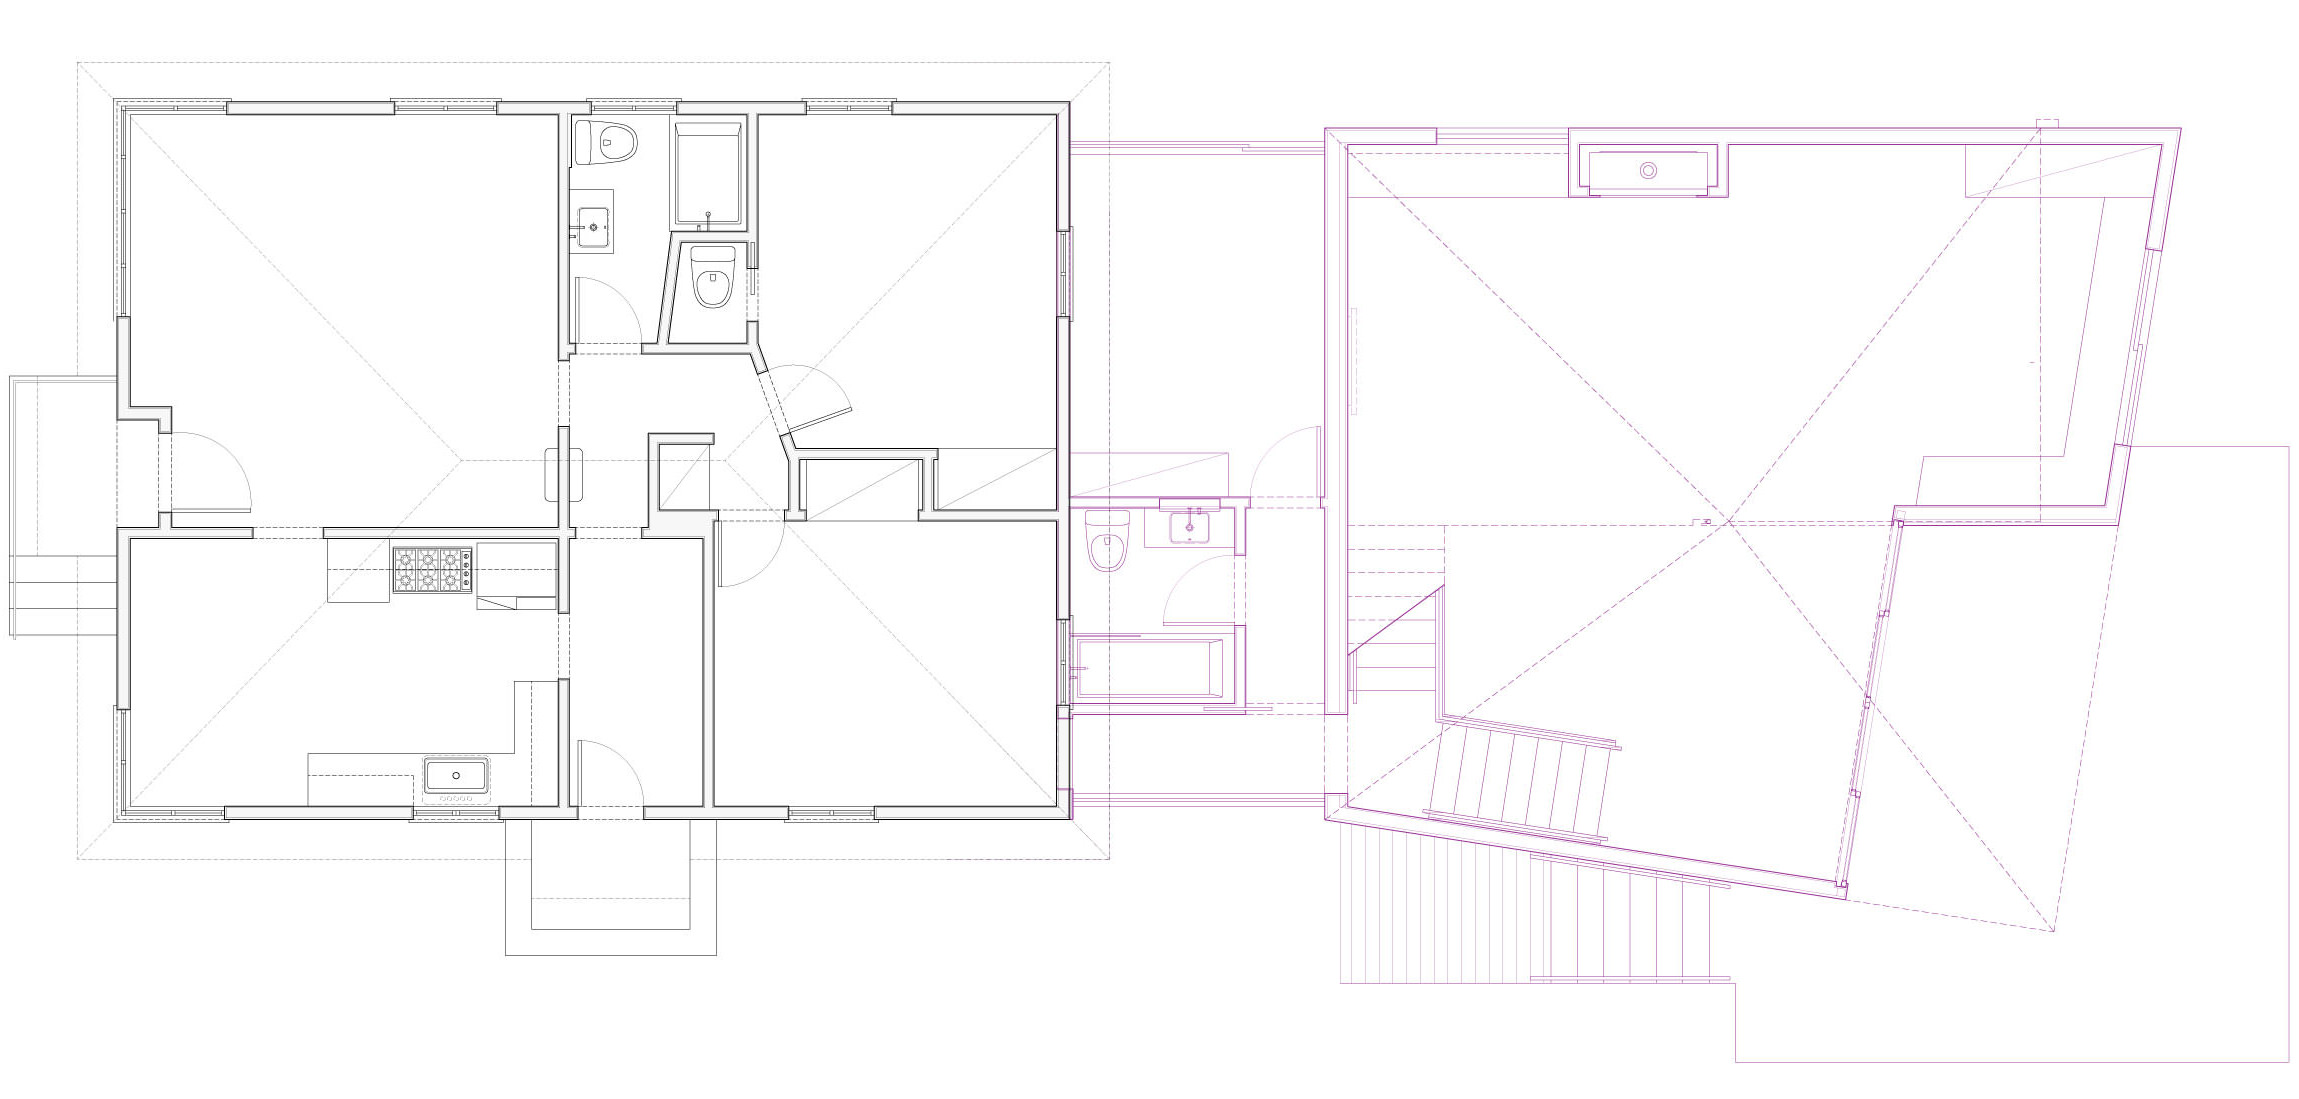 Plan of existing house with the addition in magenta.